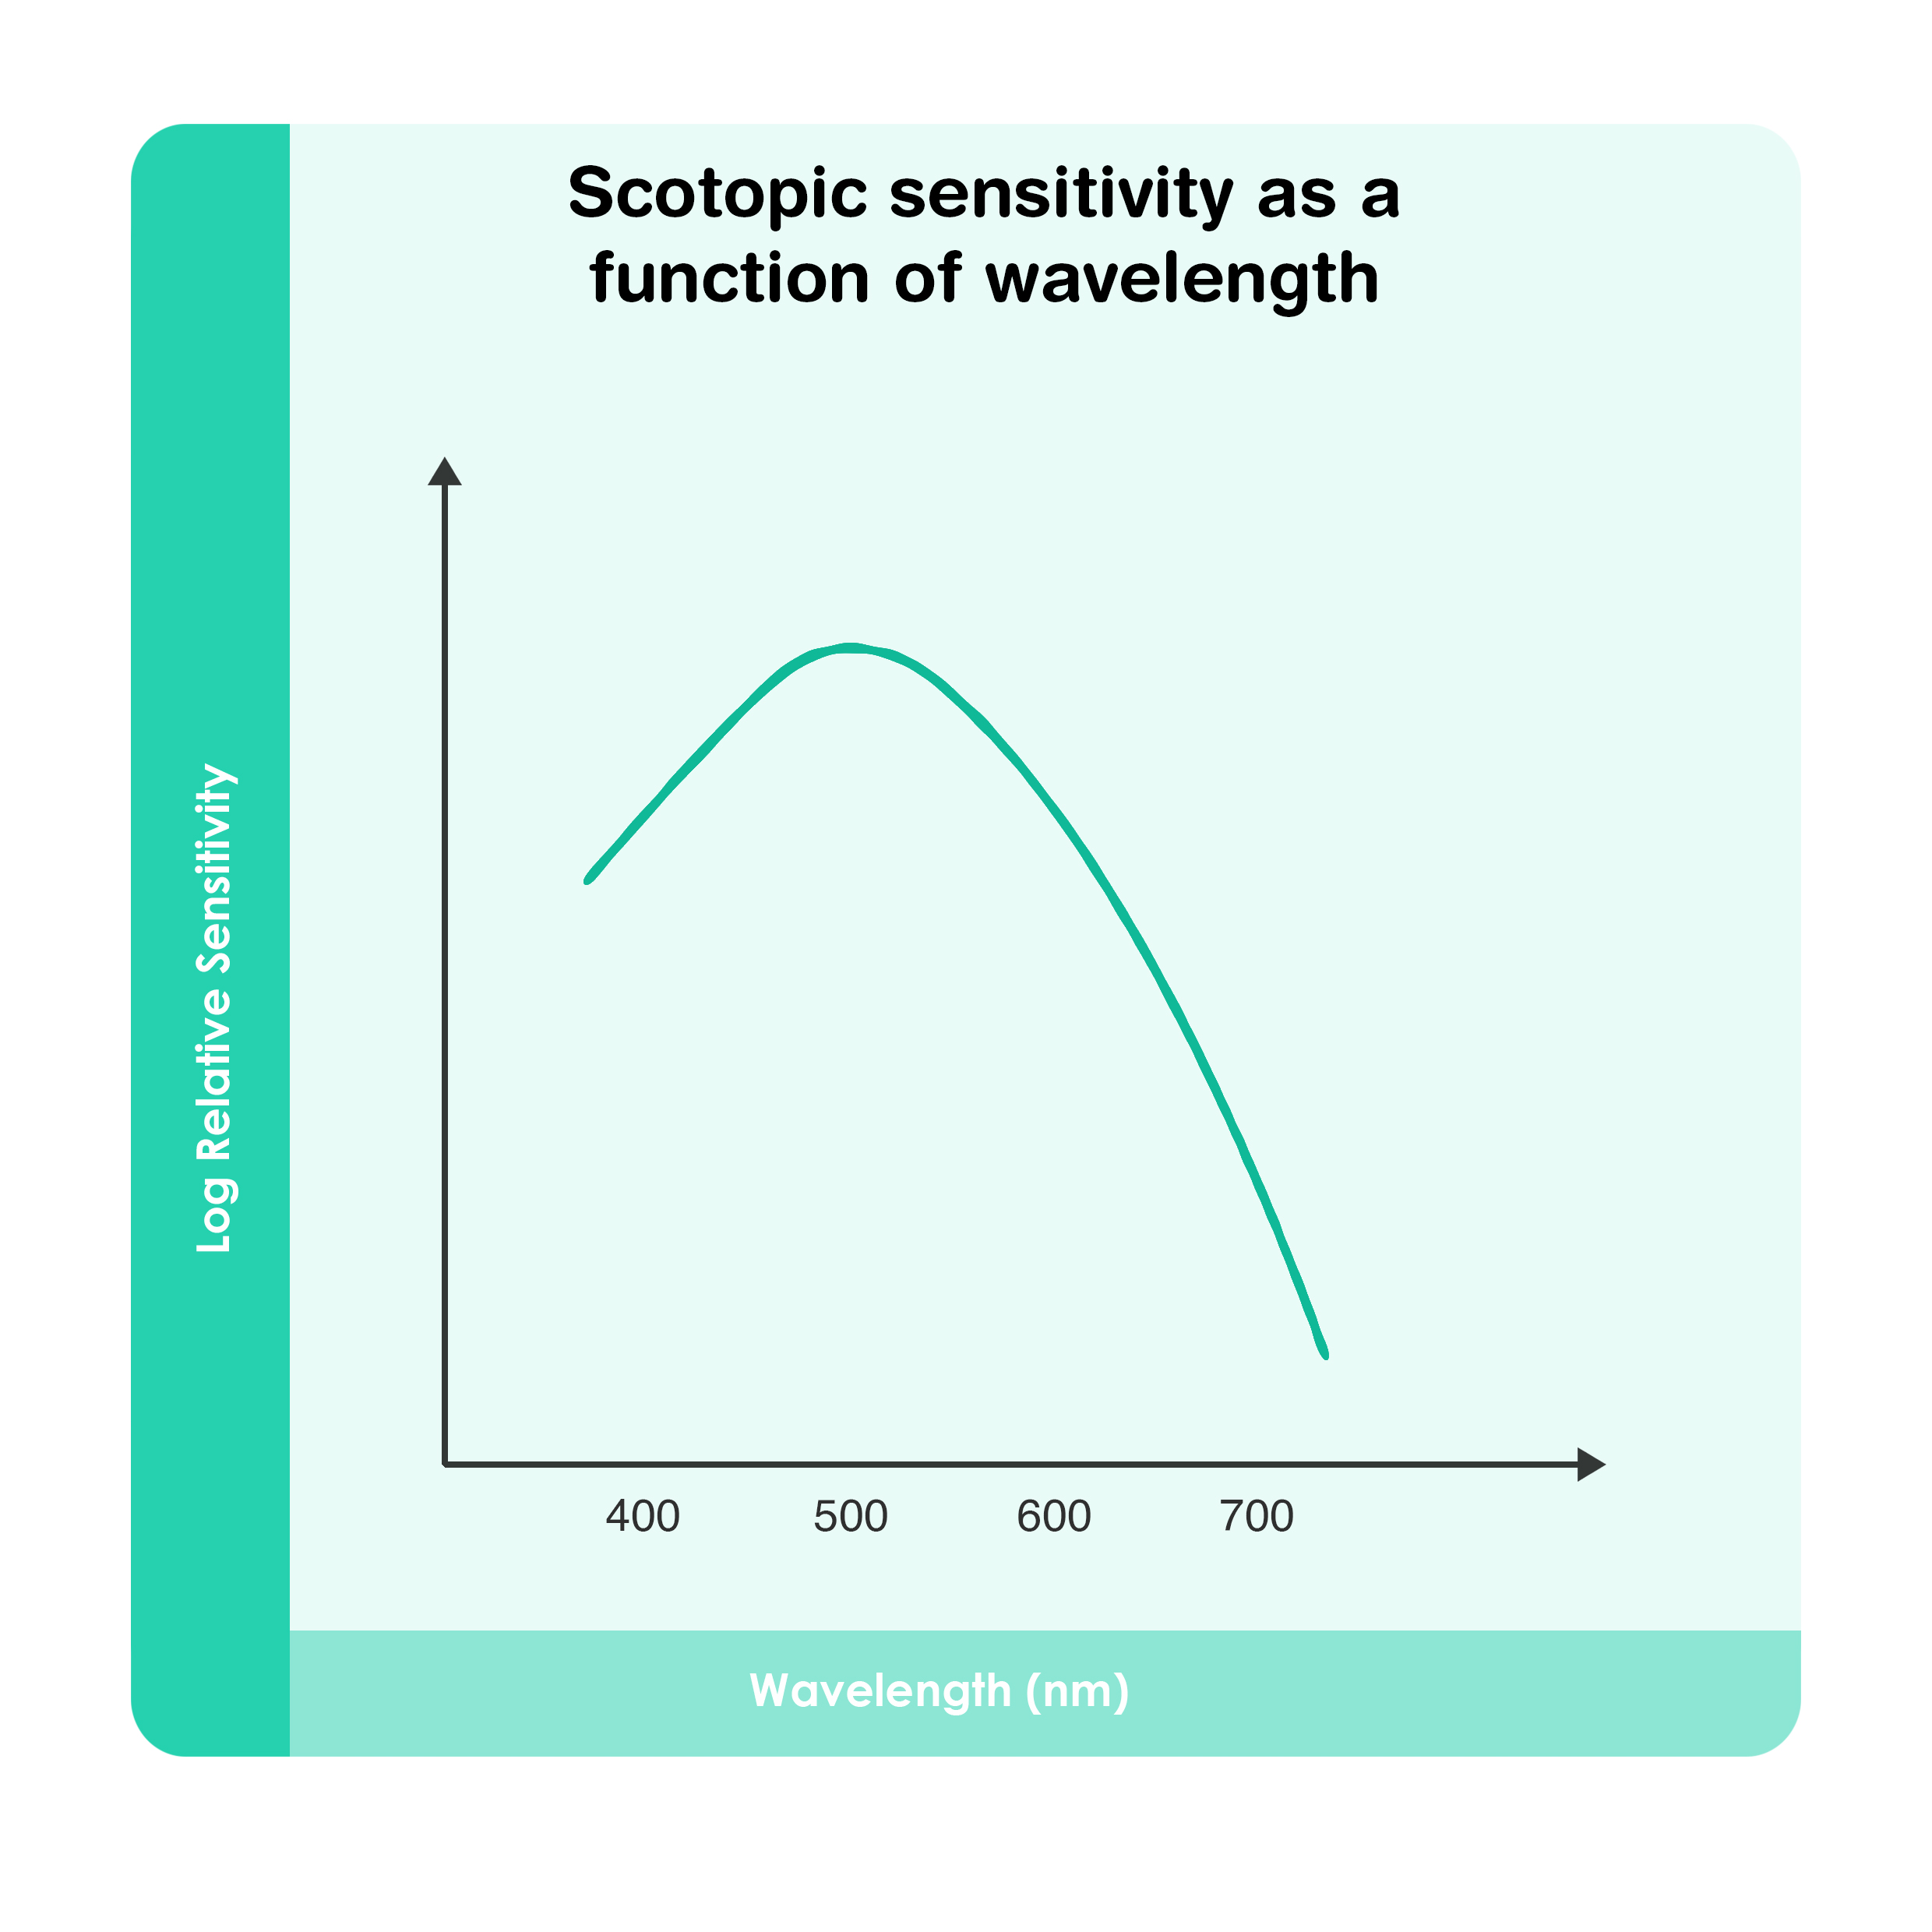 Scotopic sensitivity as a function of wavelength